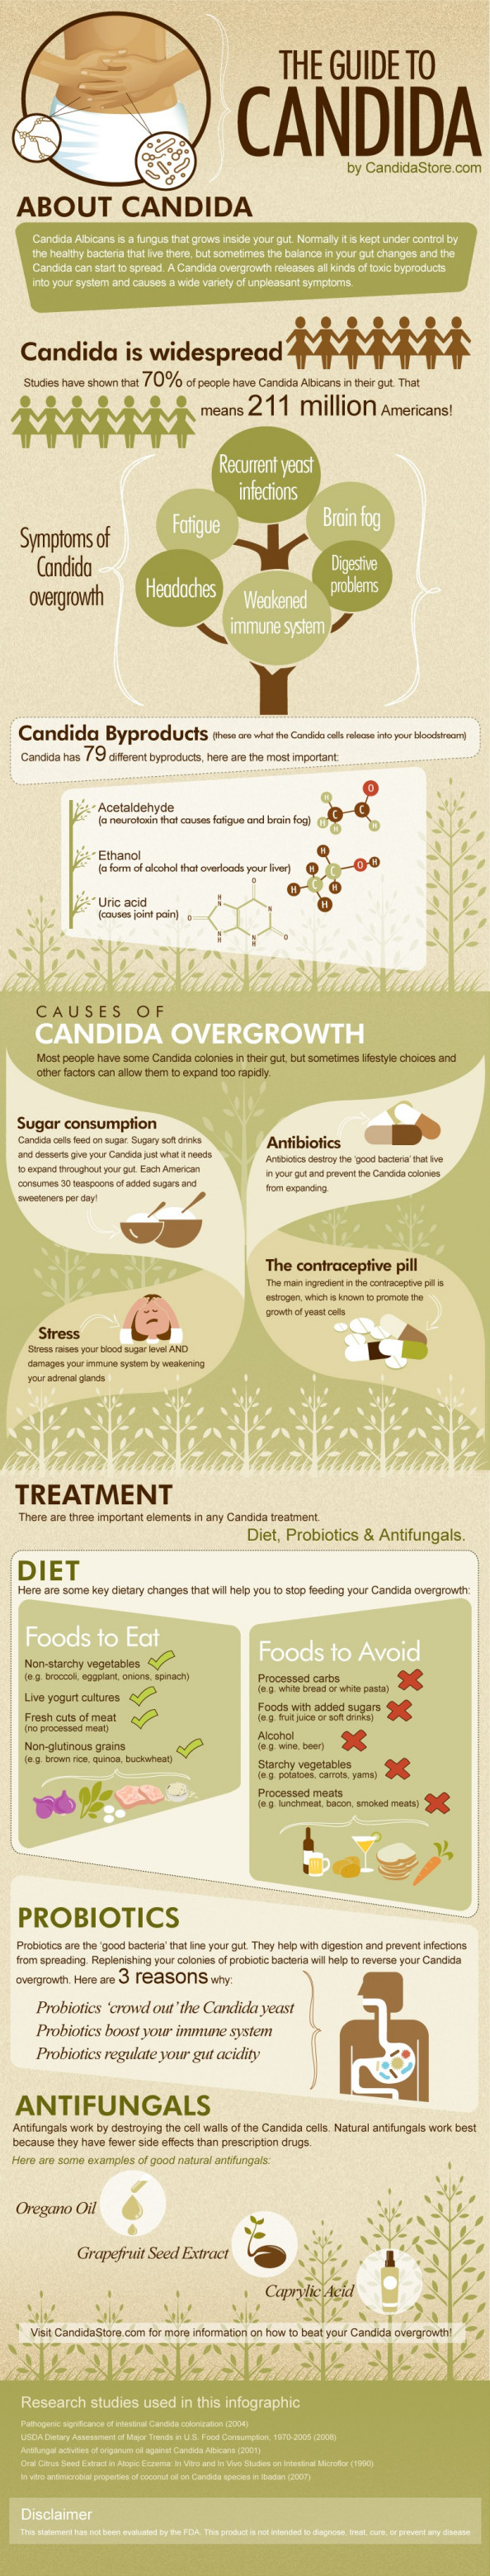 The Guide To Candida Infographic